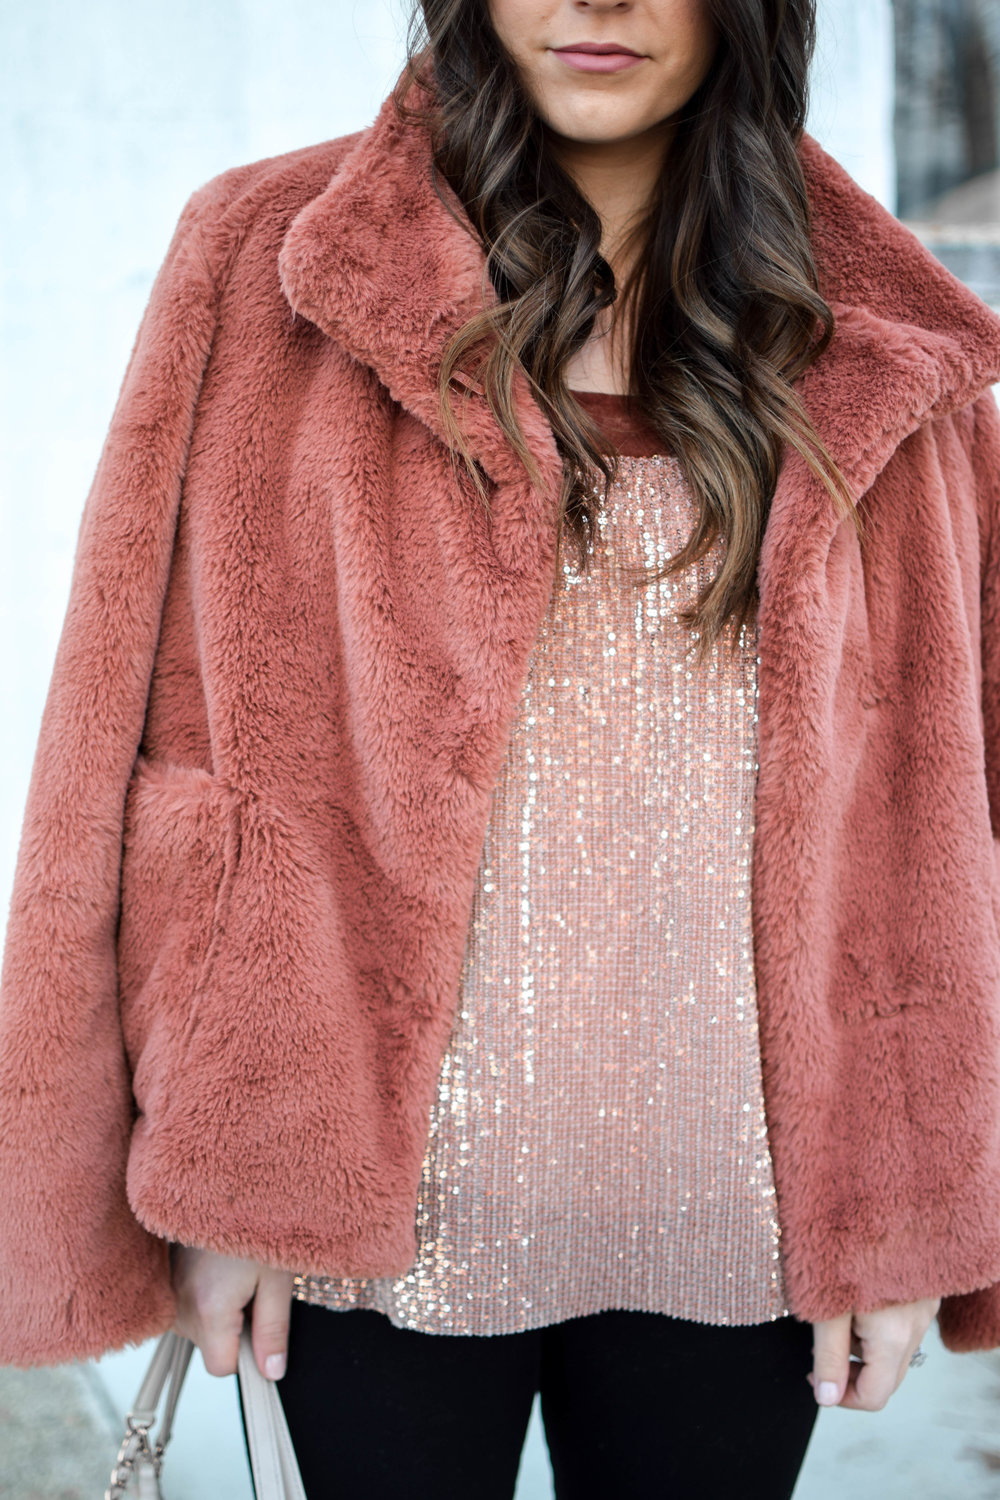 Holiday Outfit Idea: Sequins & Faux Fur | Pine Barren Beauty | holiday outfit, winter outfit idea, winter fashion, winter outfit inspiration, faux fur coat, off the shoulder sequin top, tory burch bag